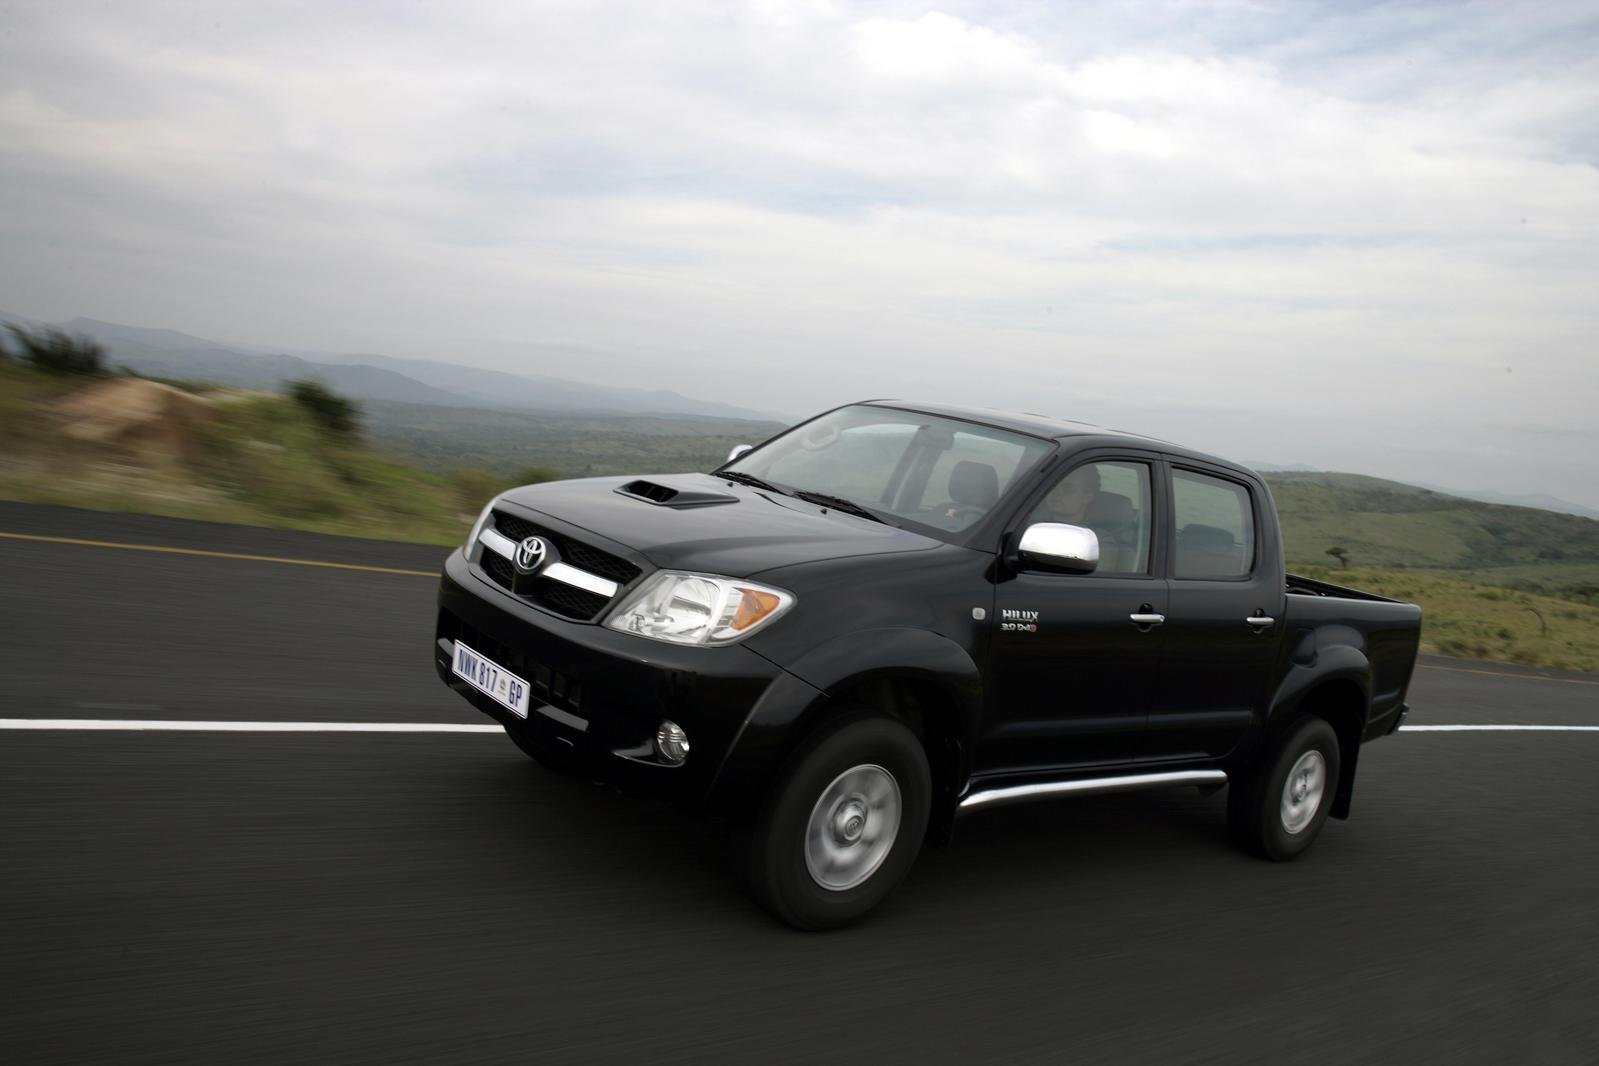 2007 toyota hilux picture 157993 car review top speed. Black Bedroom Furniture Sets. Home Design Ideas